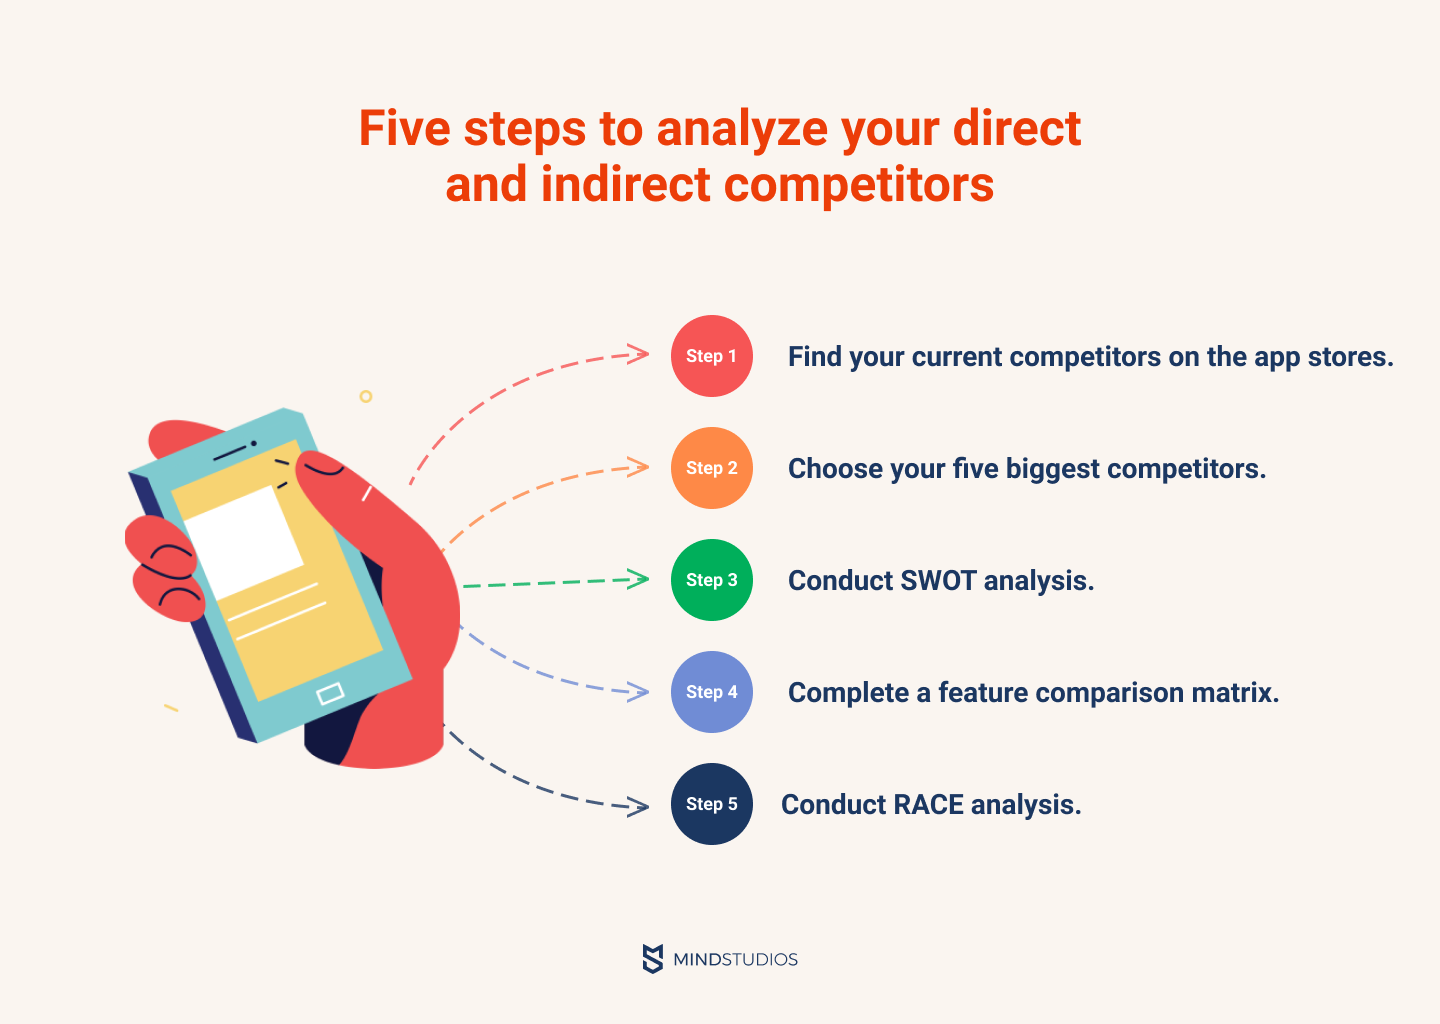 Five steps to analyze your direct and indirect competitors